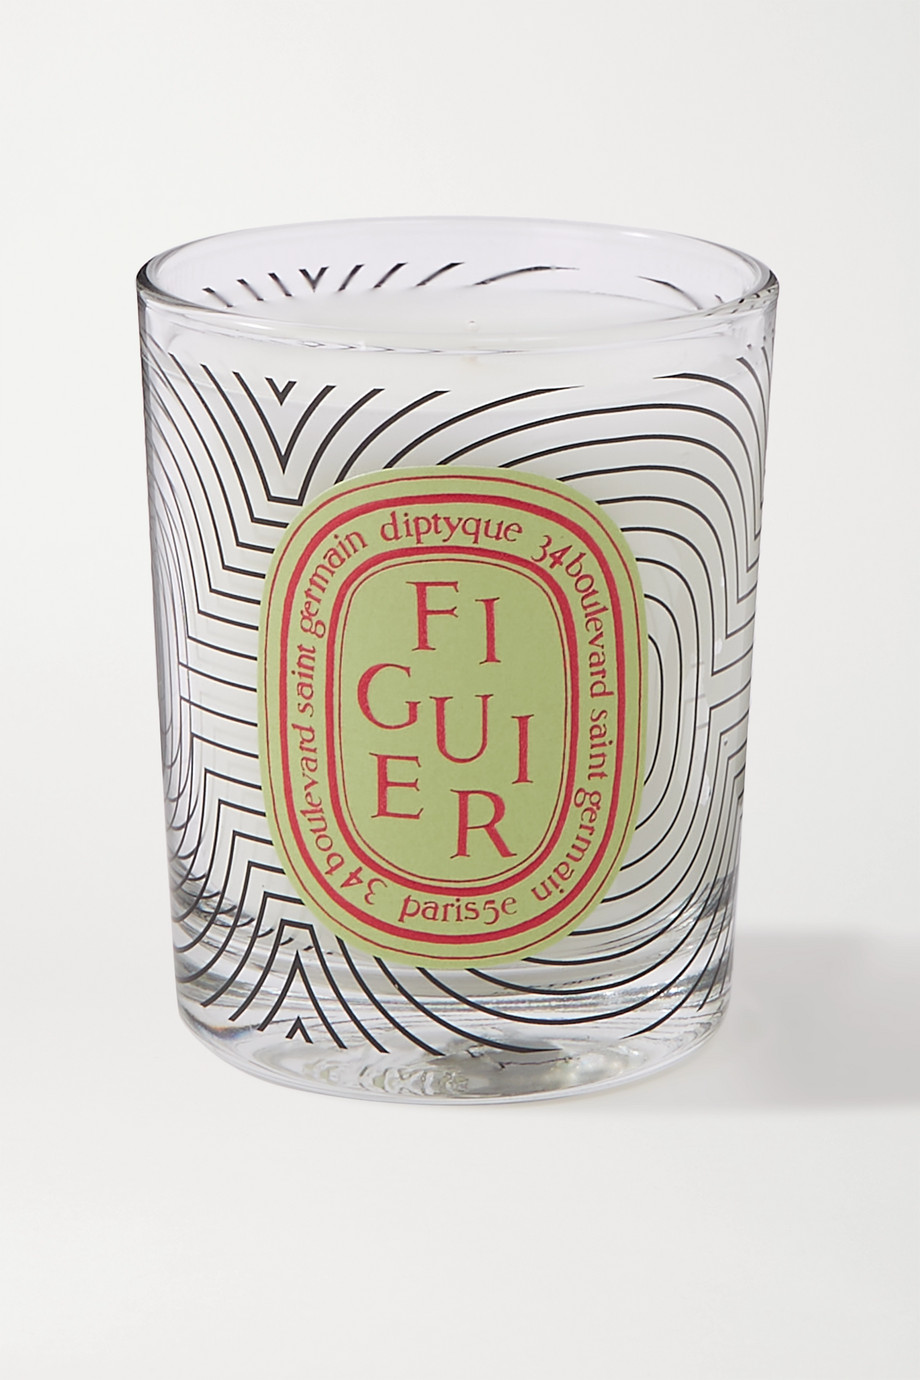 DIPTYQUE Graphic Collection scented candle - Figuier, 70g